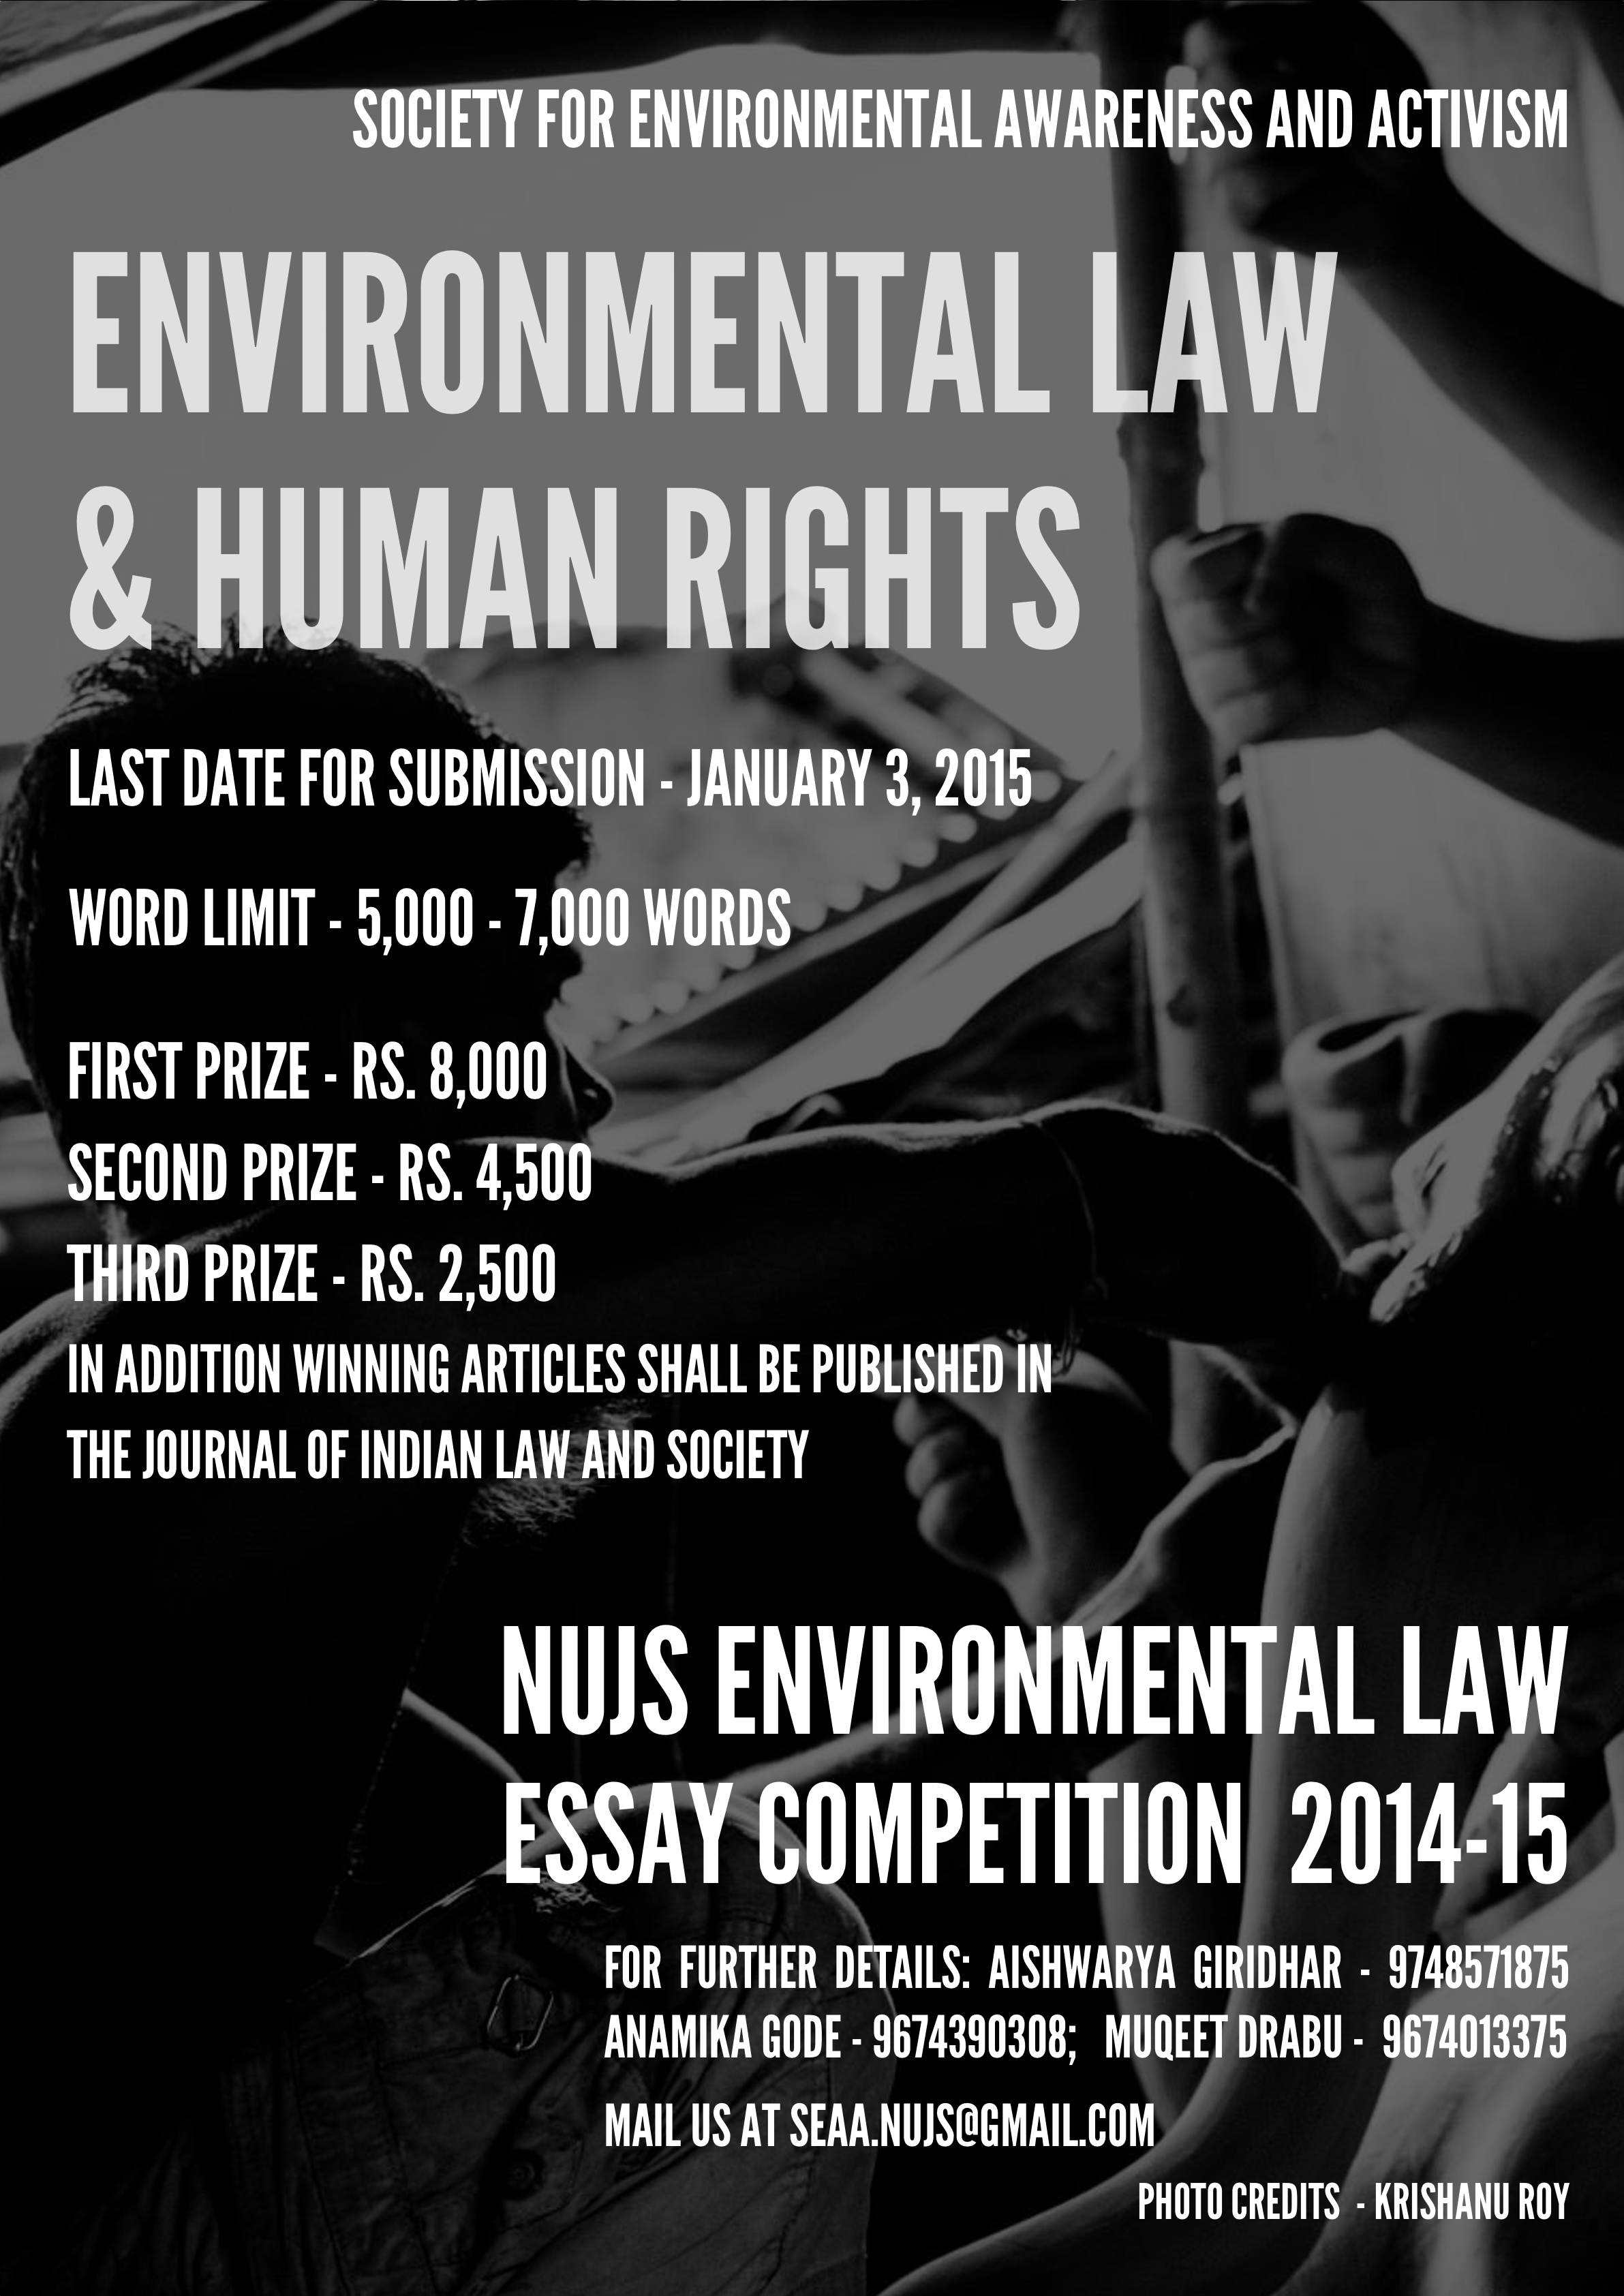 Nd Nujs Environmental Law Essay Competition  Nujs Environmental Law Essay Competition